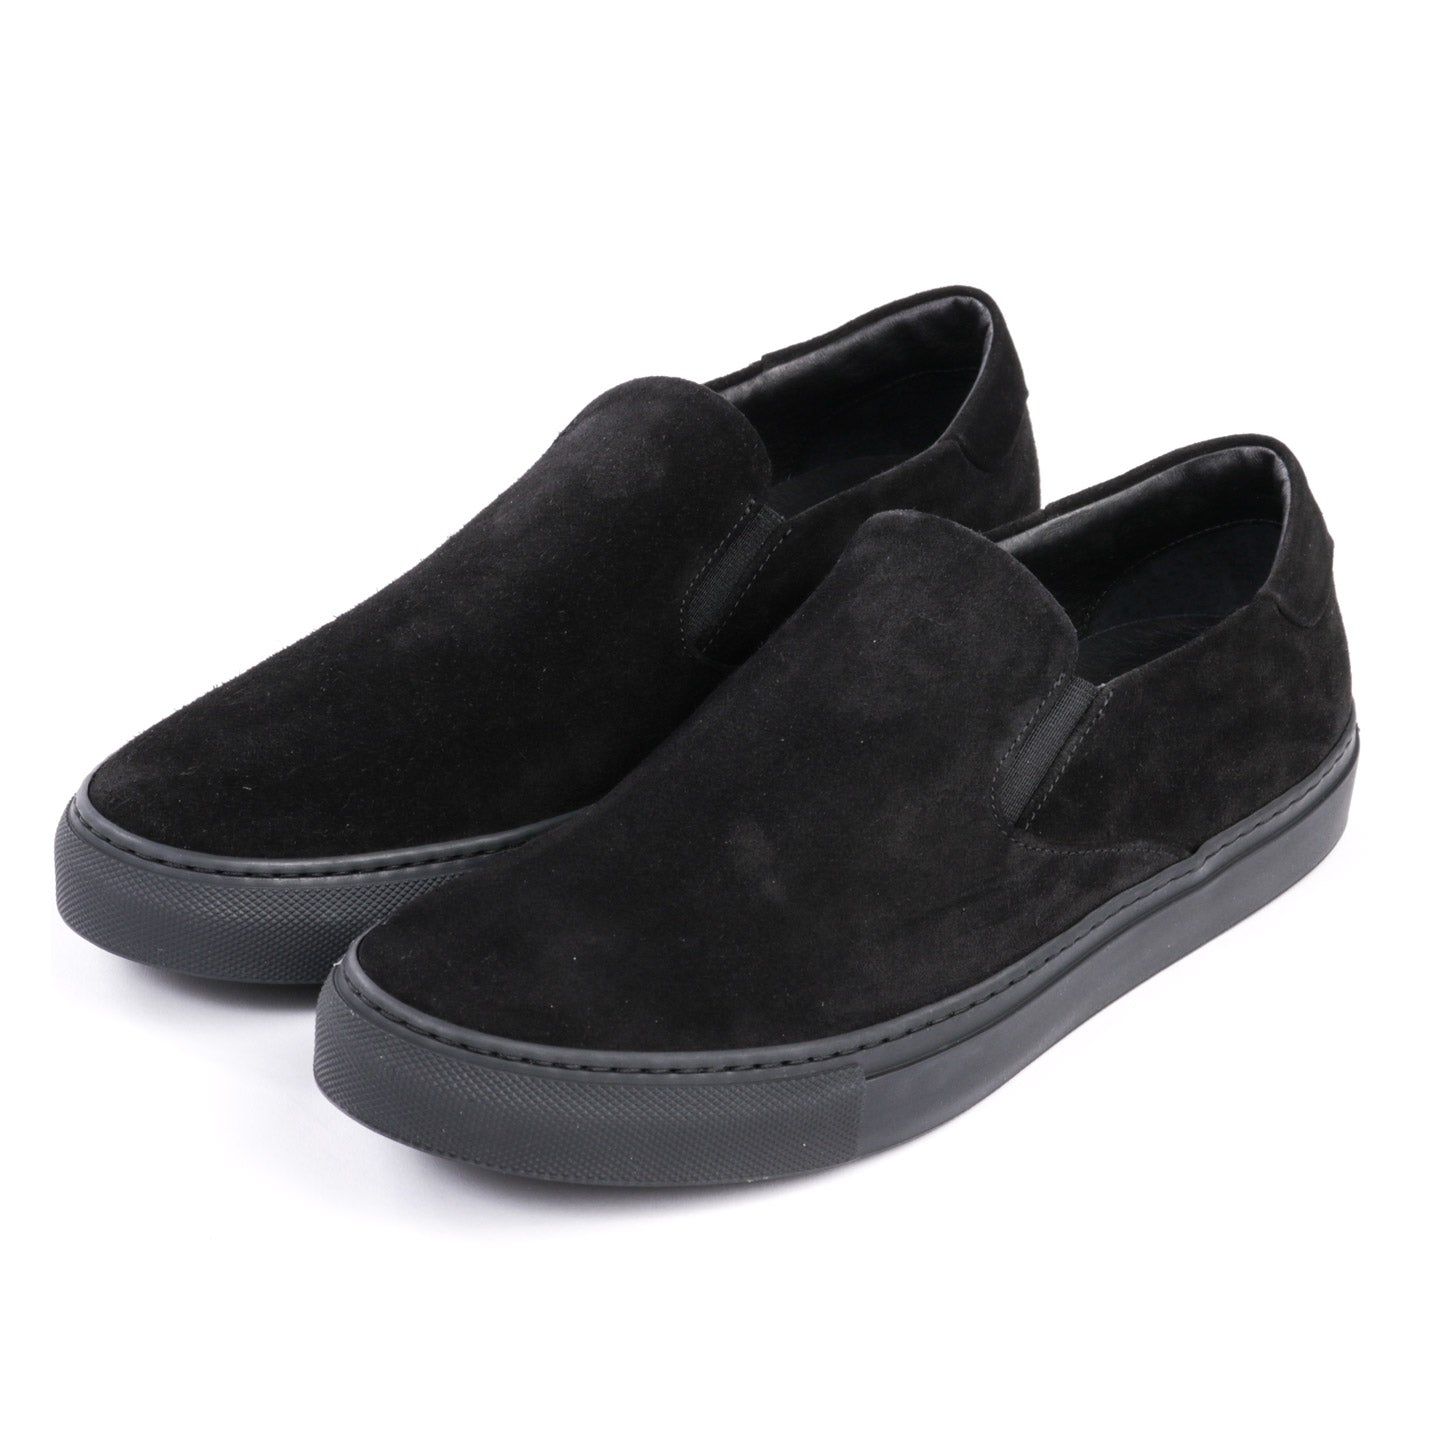 WINGS + HORNS SUEDE SLIP-ON BLACK / BLACK